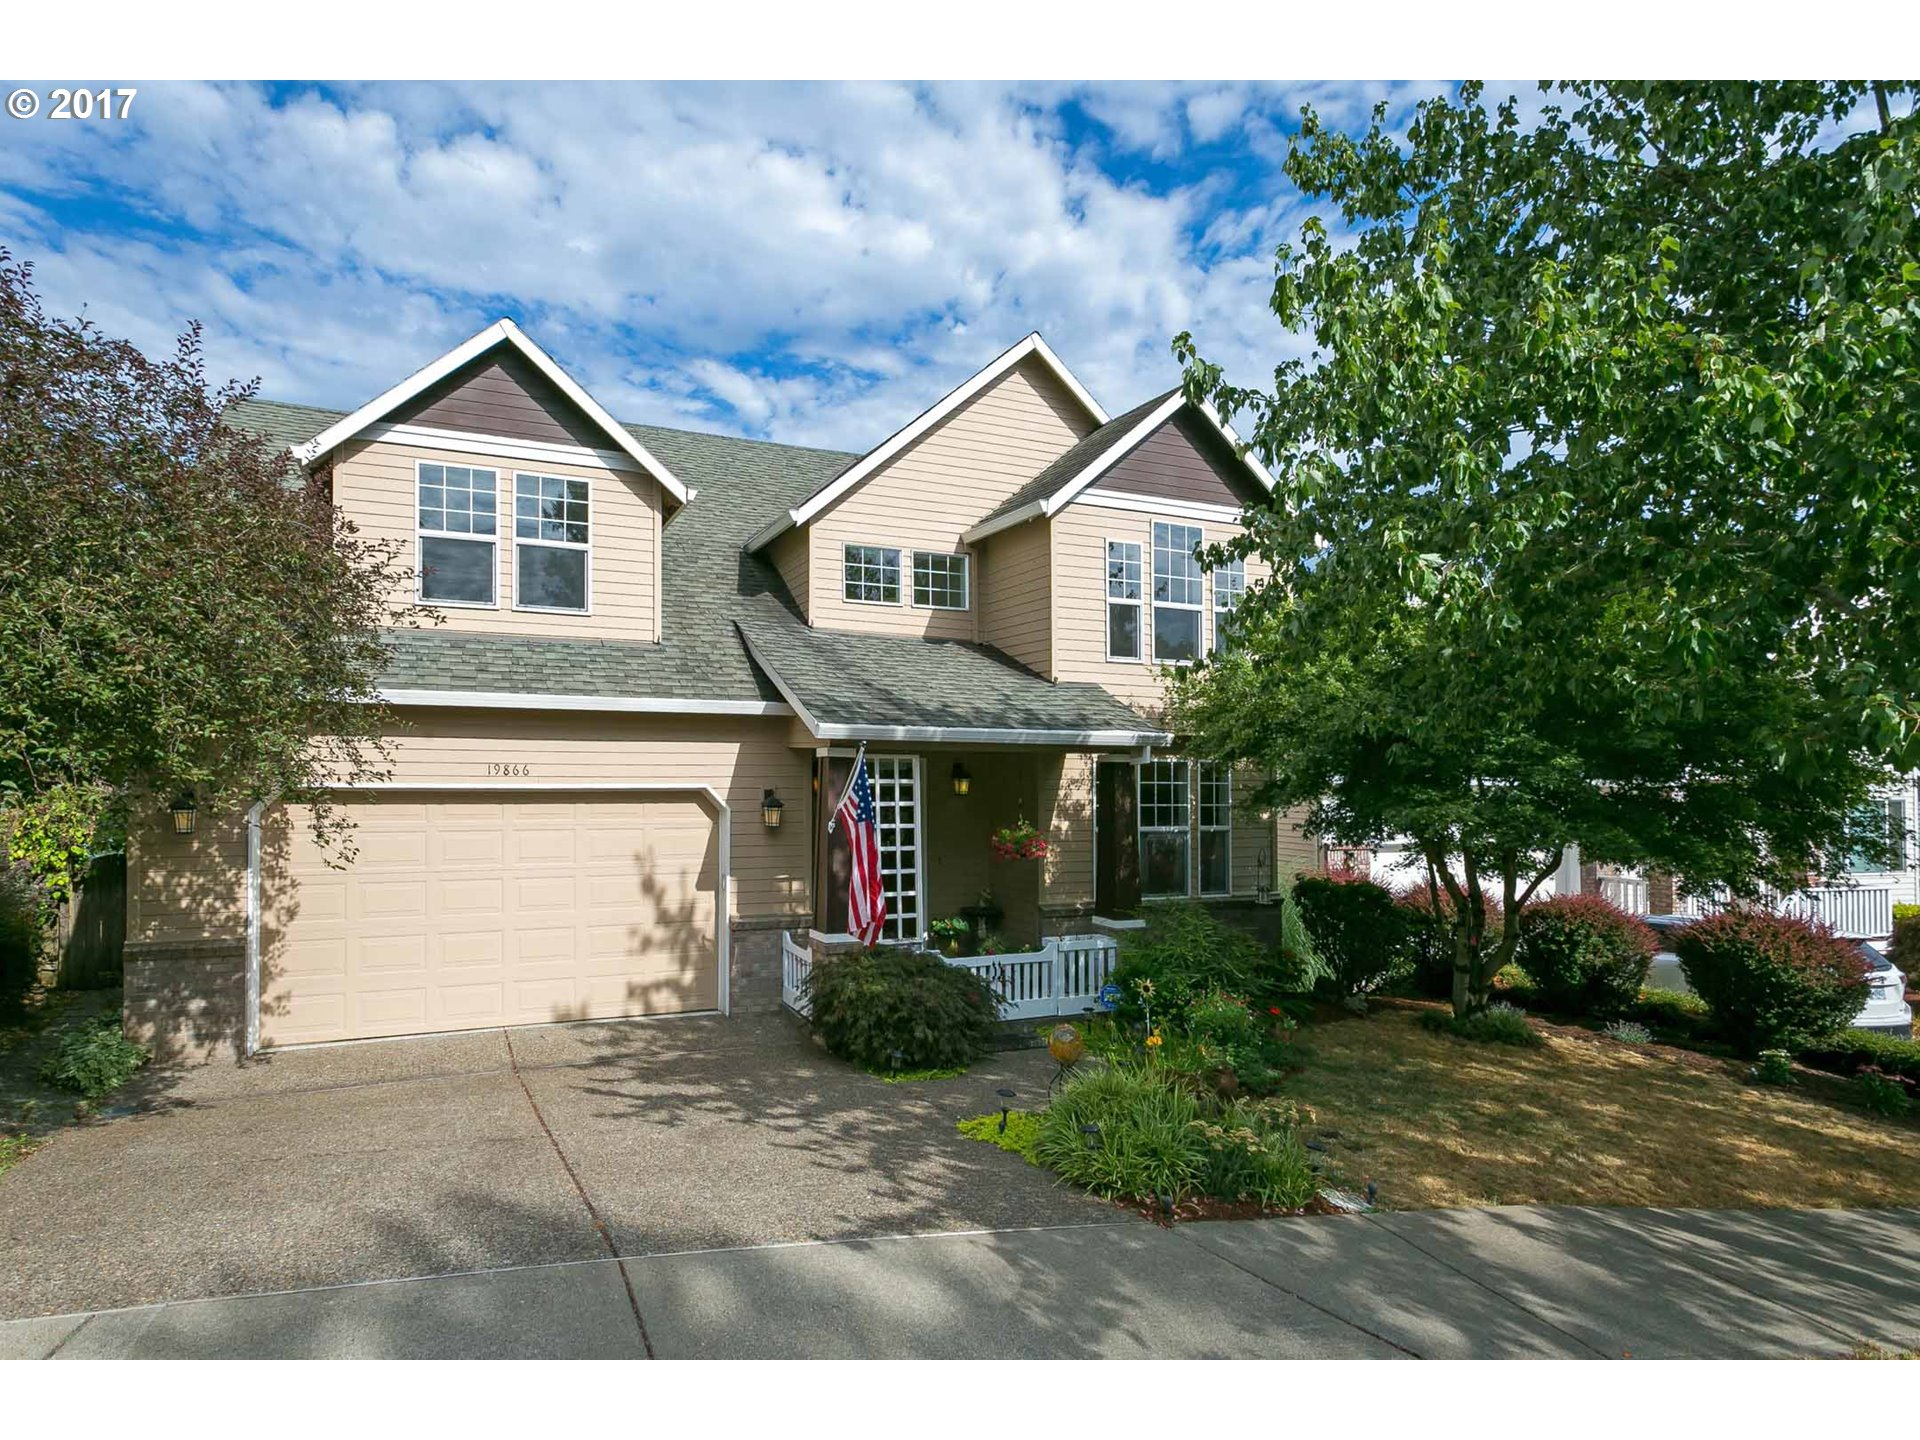 19866 BENNINGTON CT, West Linn, OR 97068